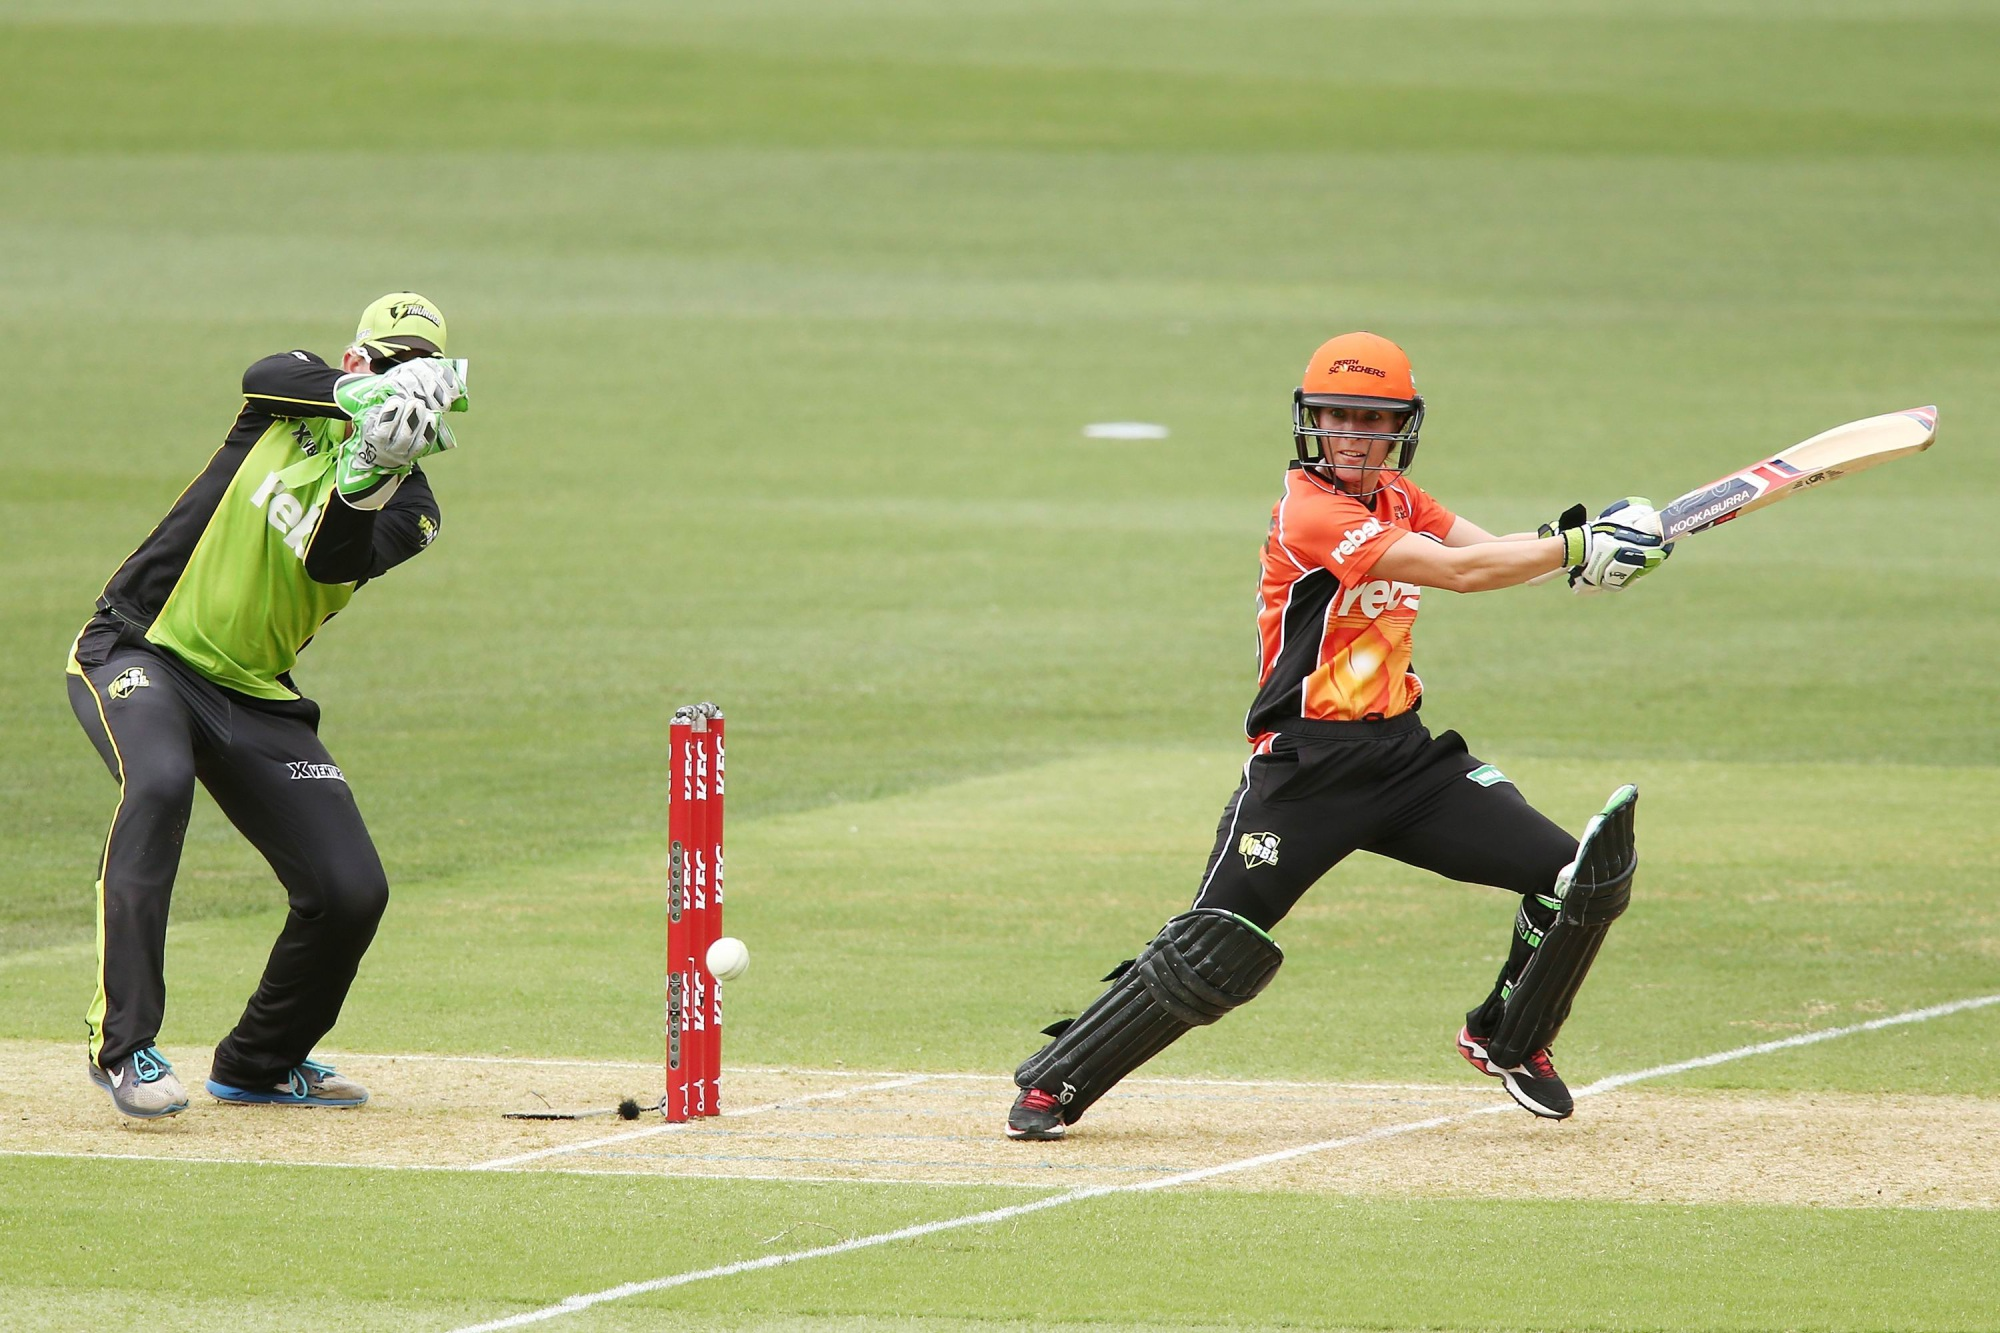 Chloe Piparo during the Women's Big Bash League semi-final against Sydney Thunder at Adelaide Oval on January 21. Picture: Morne de Klerk/Getty Images